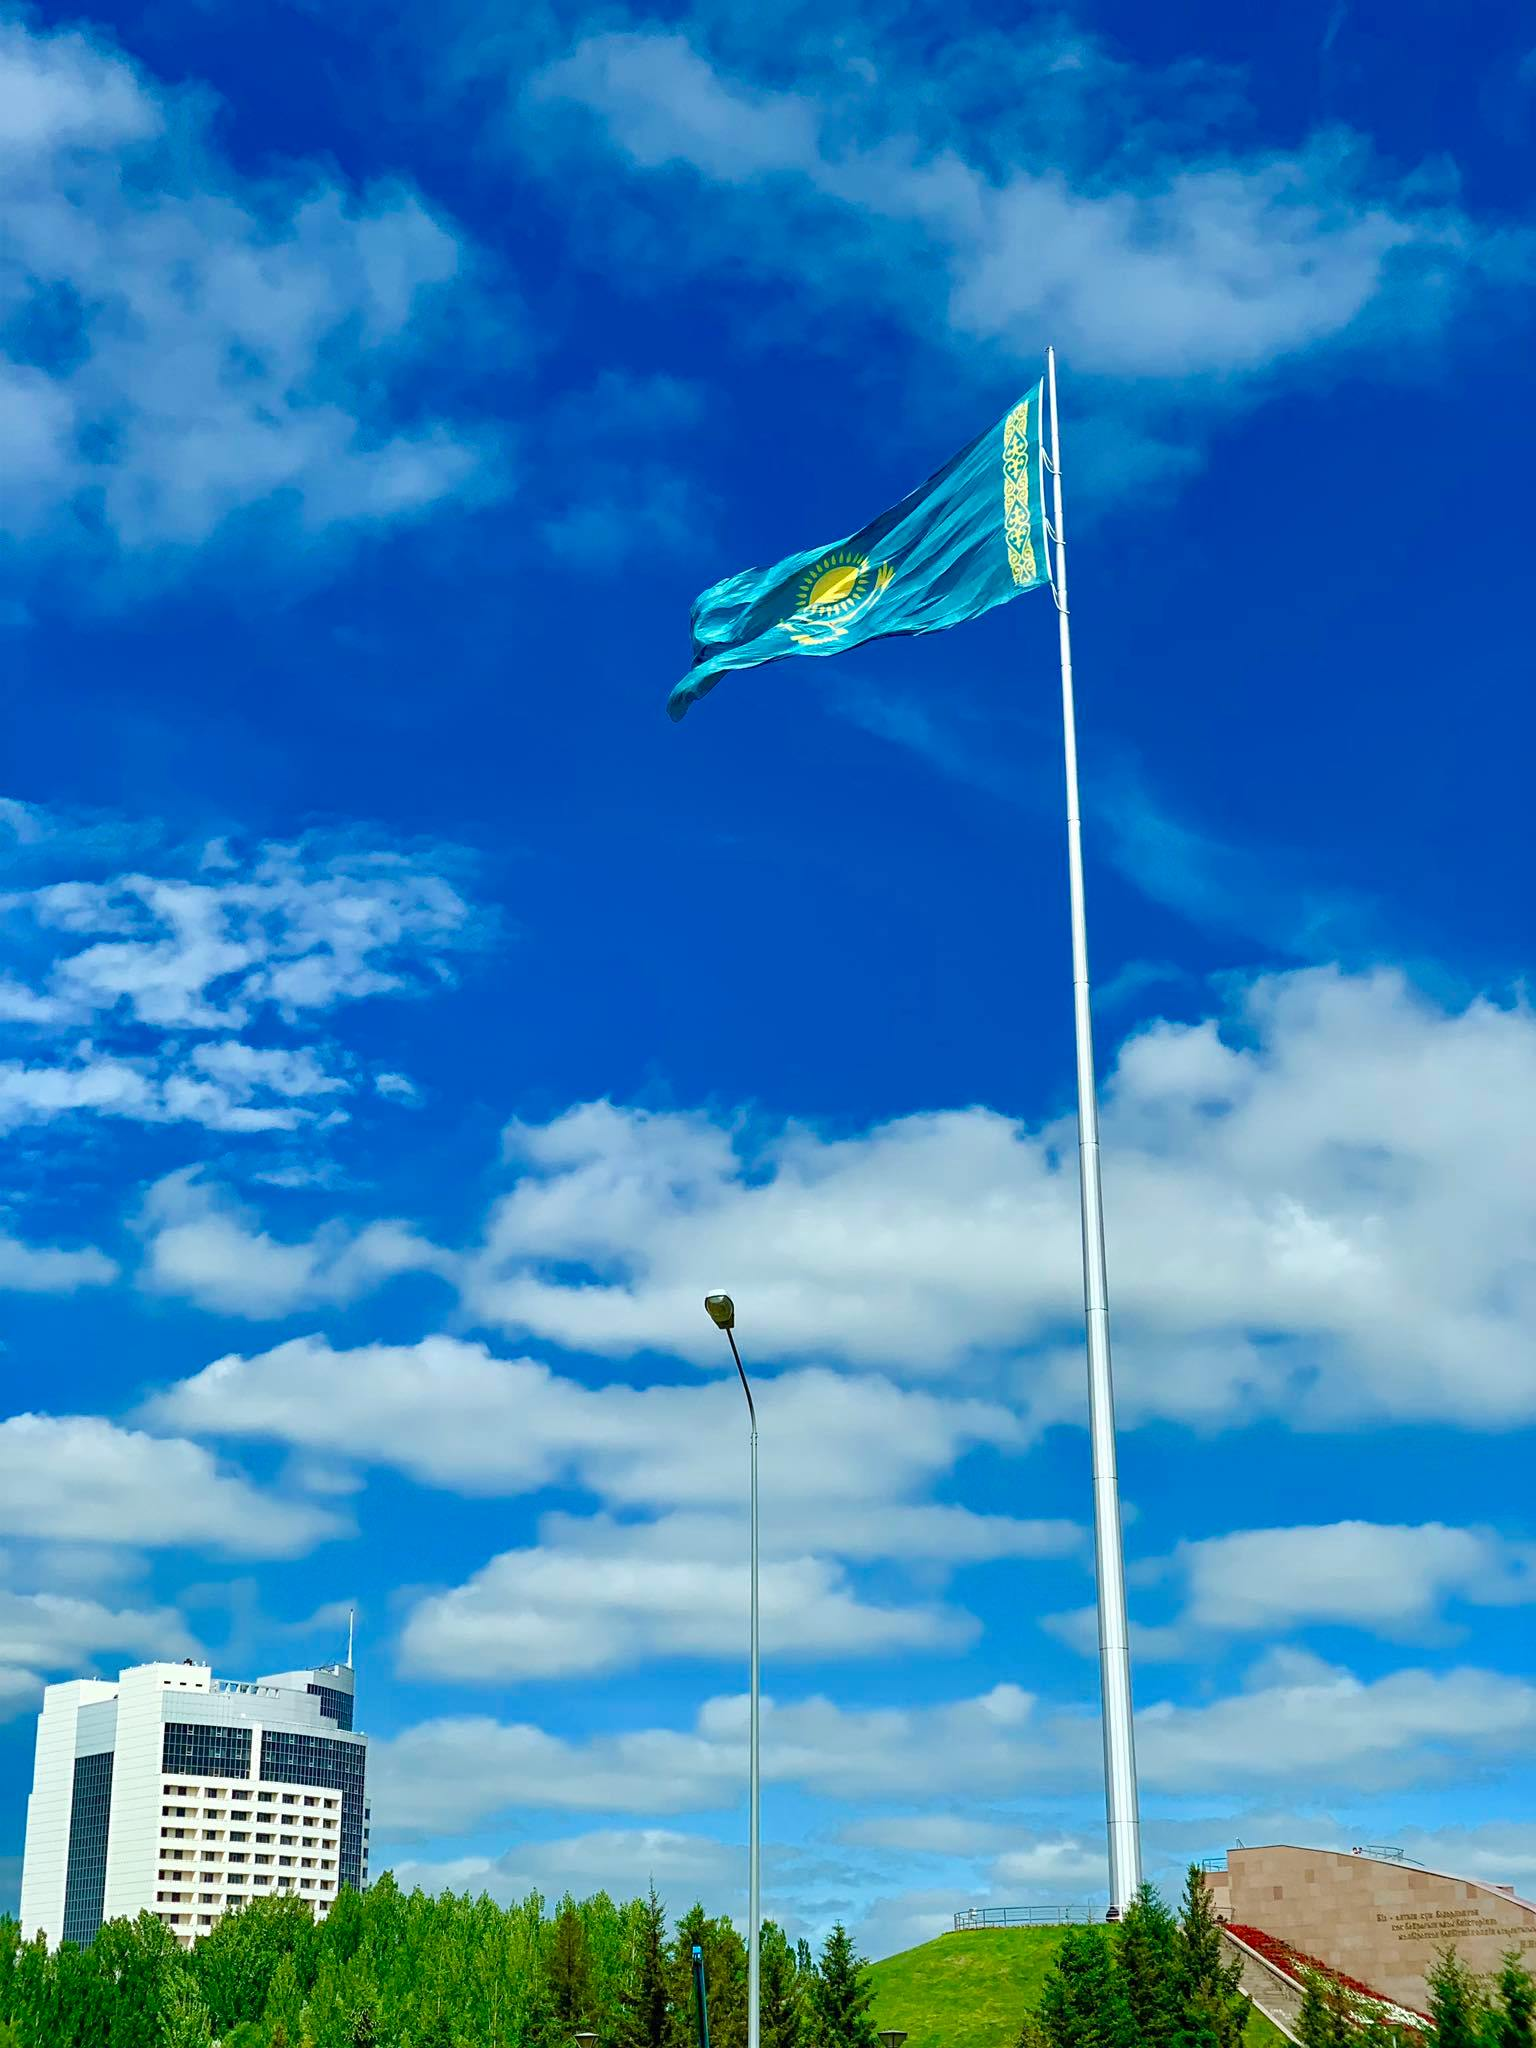 Kach Solo Travels in 2019 Nursultan  Astana - the City of the Future36.jpg